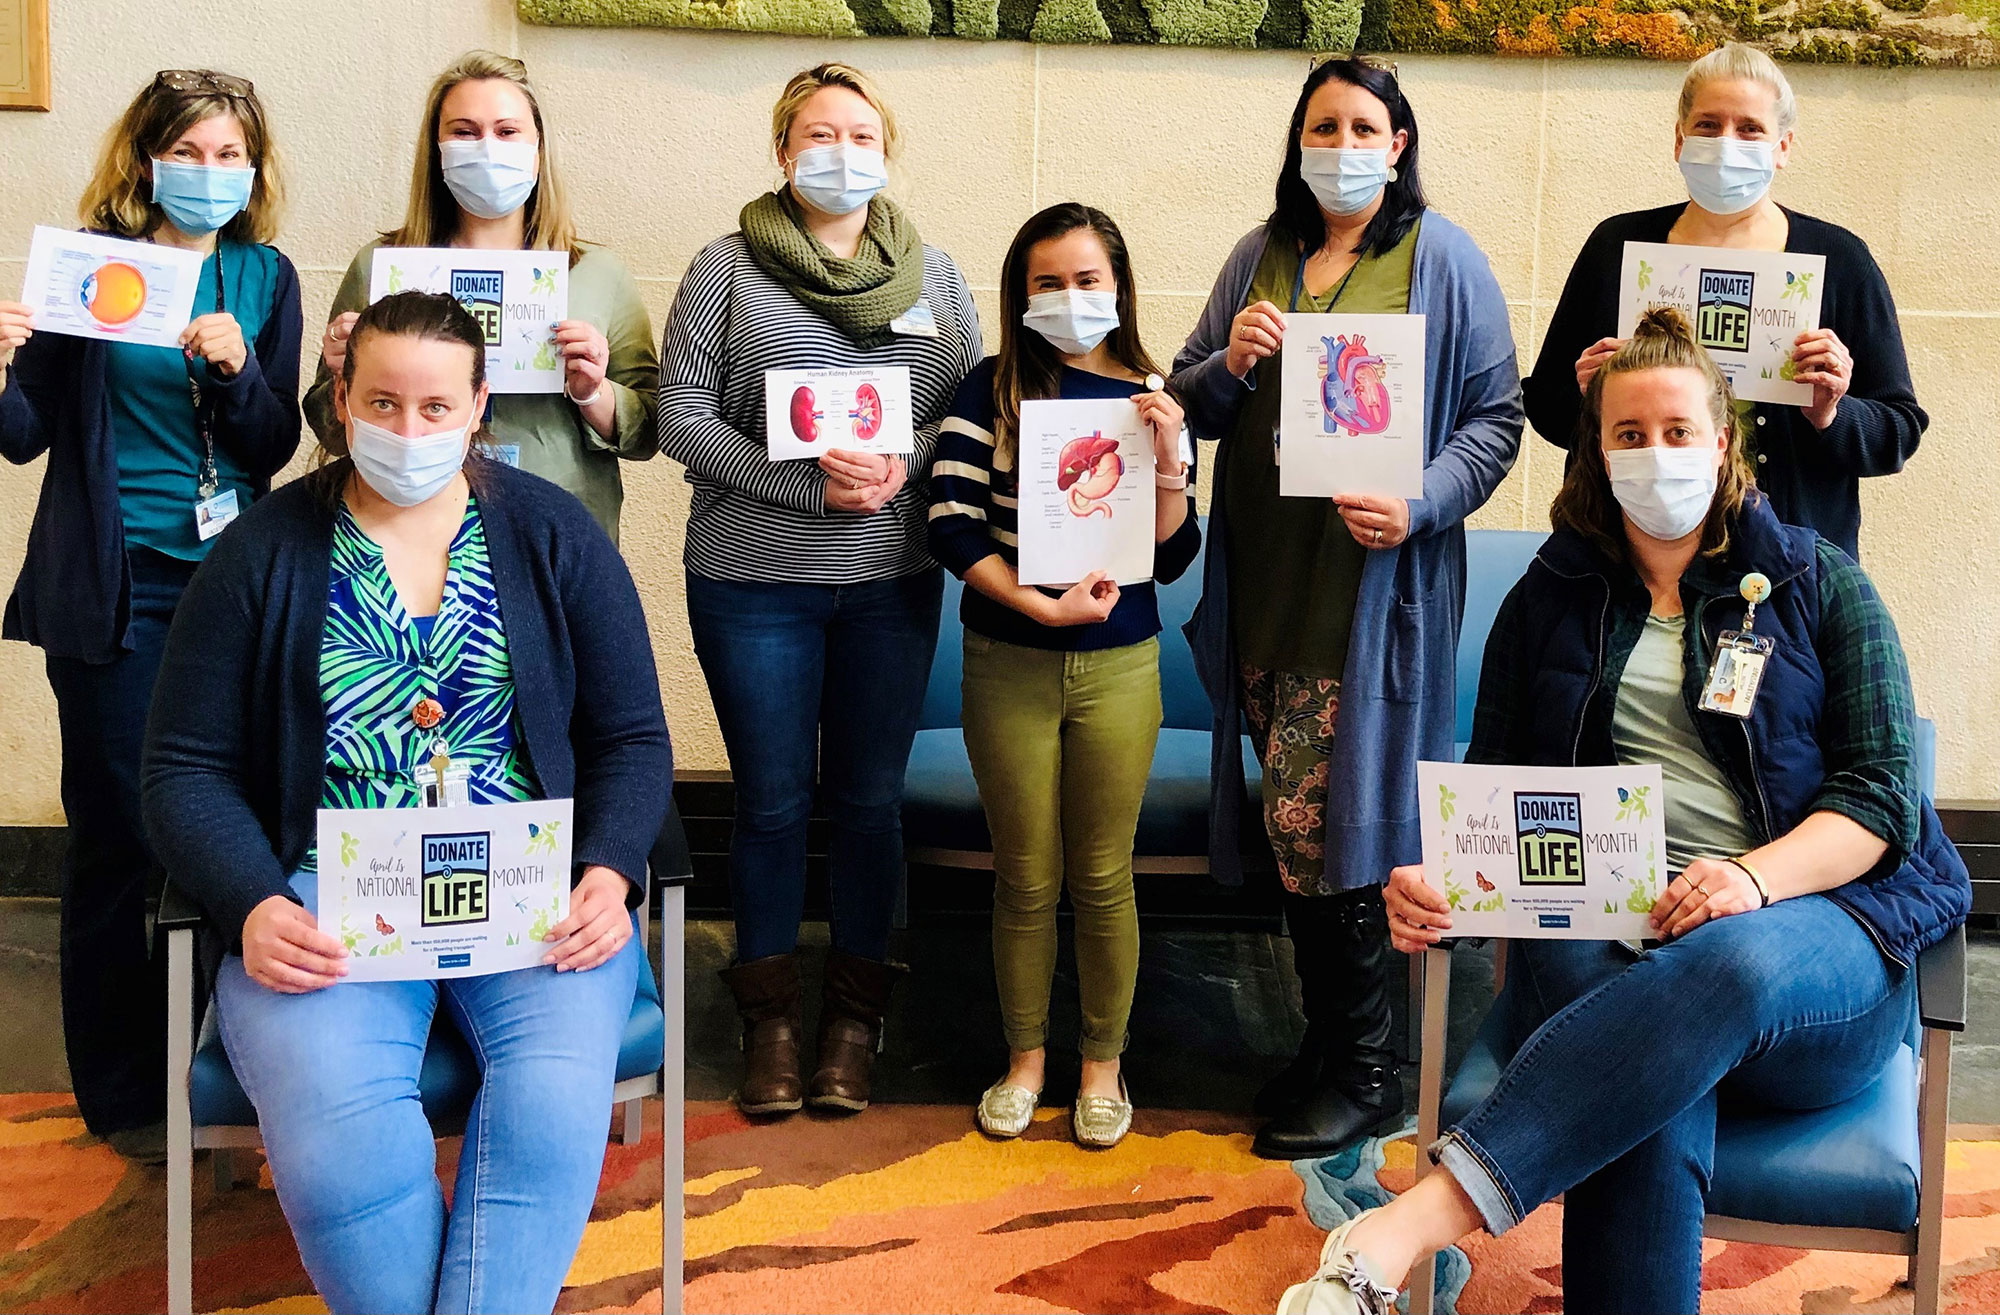 A group of eight people, six standing and two sitting, are pictured wearing face masks and holding signs.